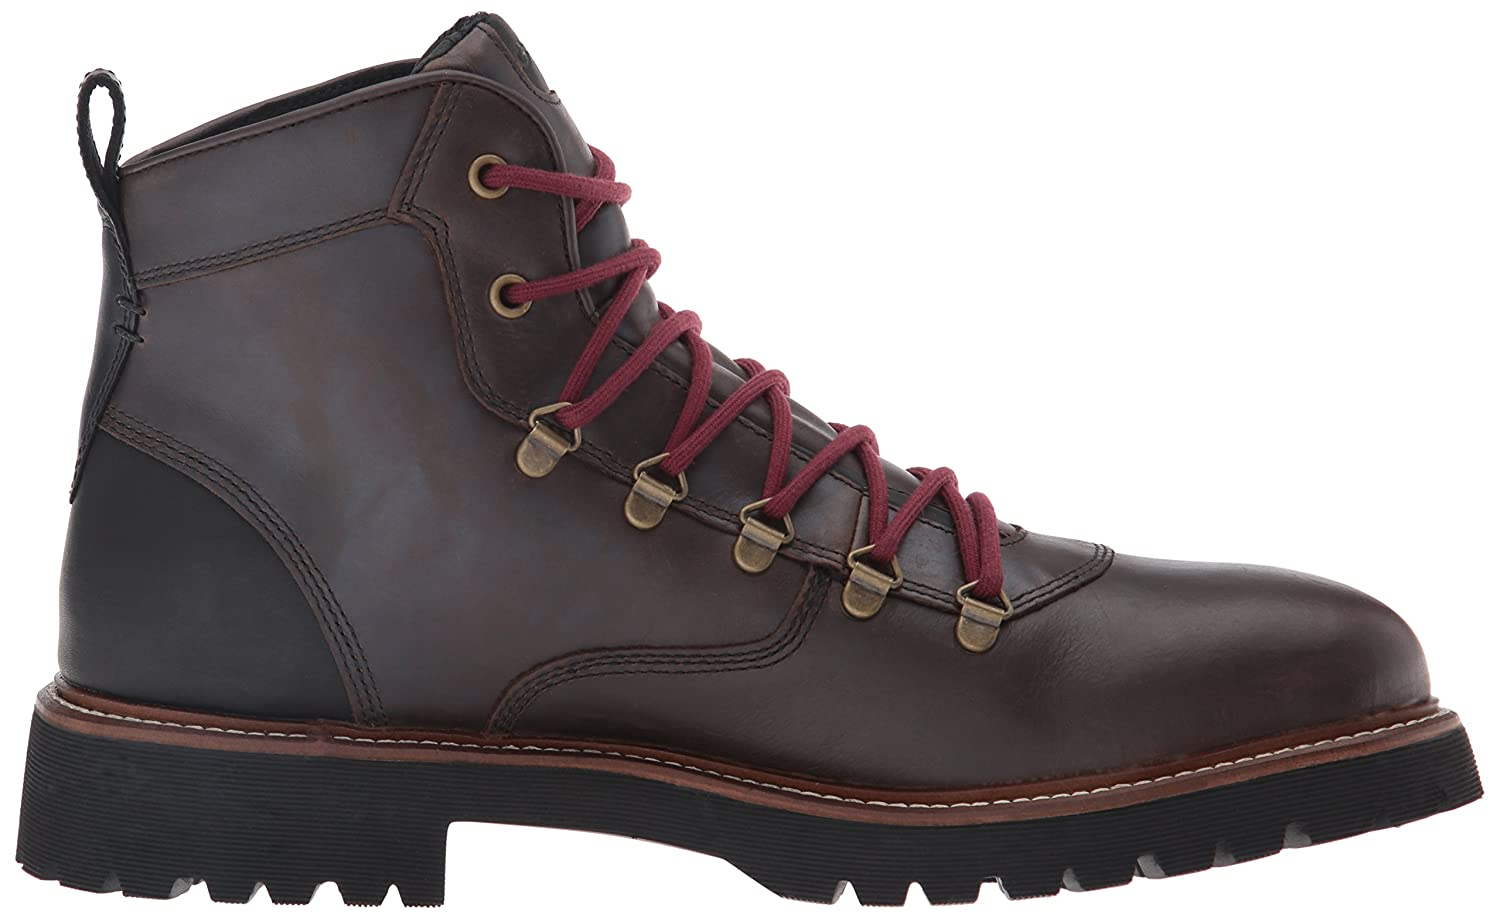 Geox Homme Chaussures Taille 43 KIEVEN ABX Bottines à